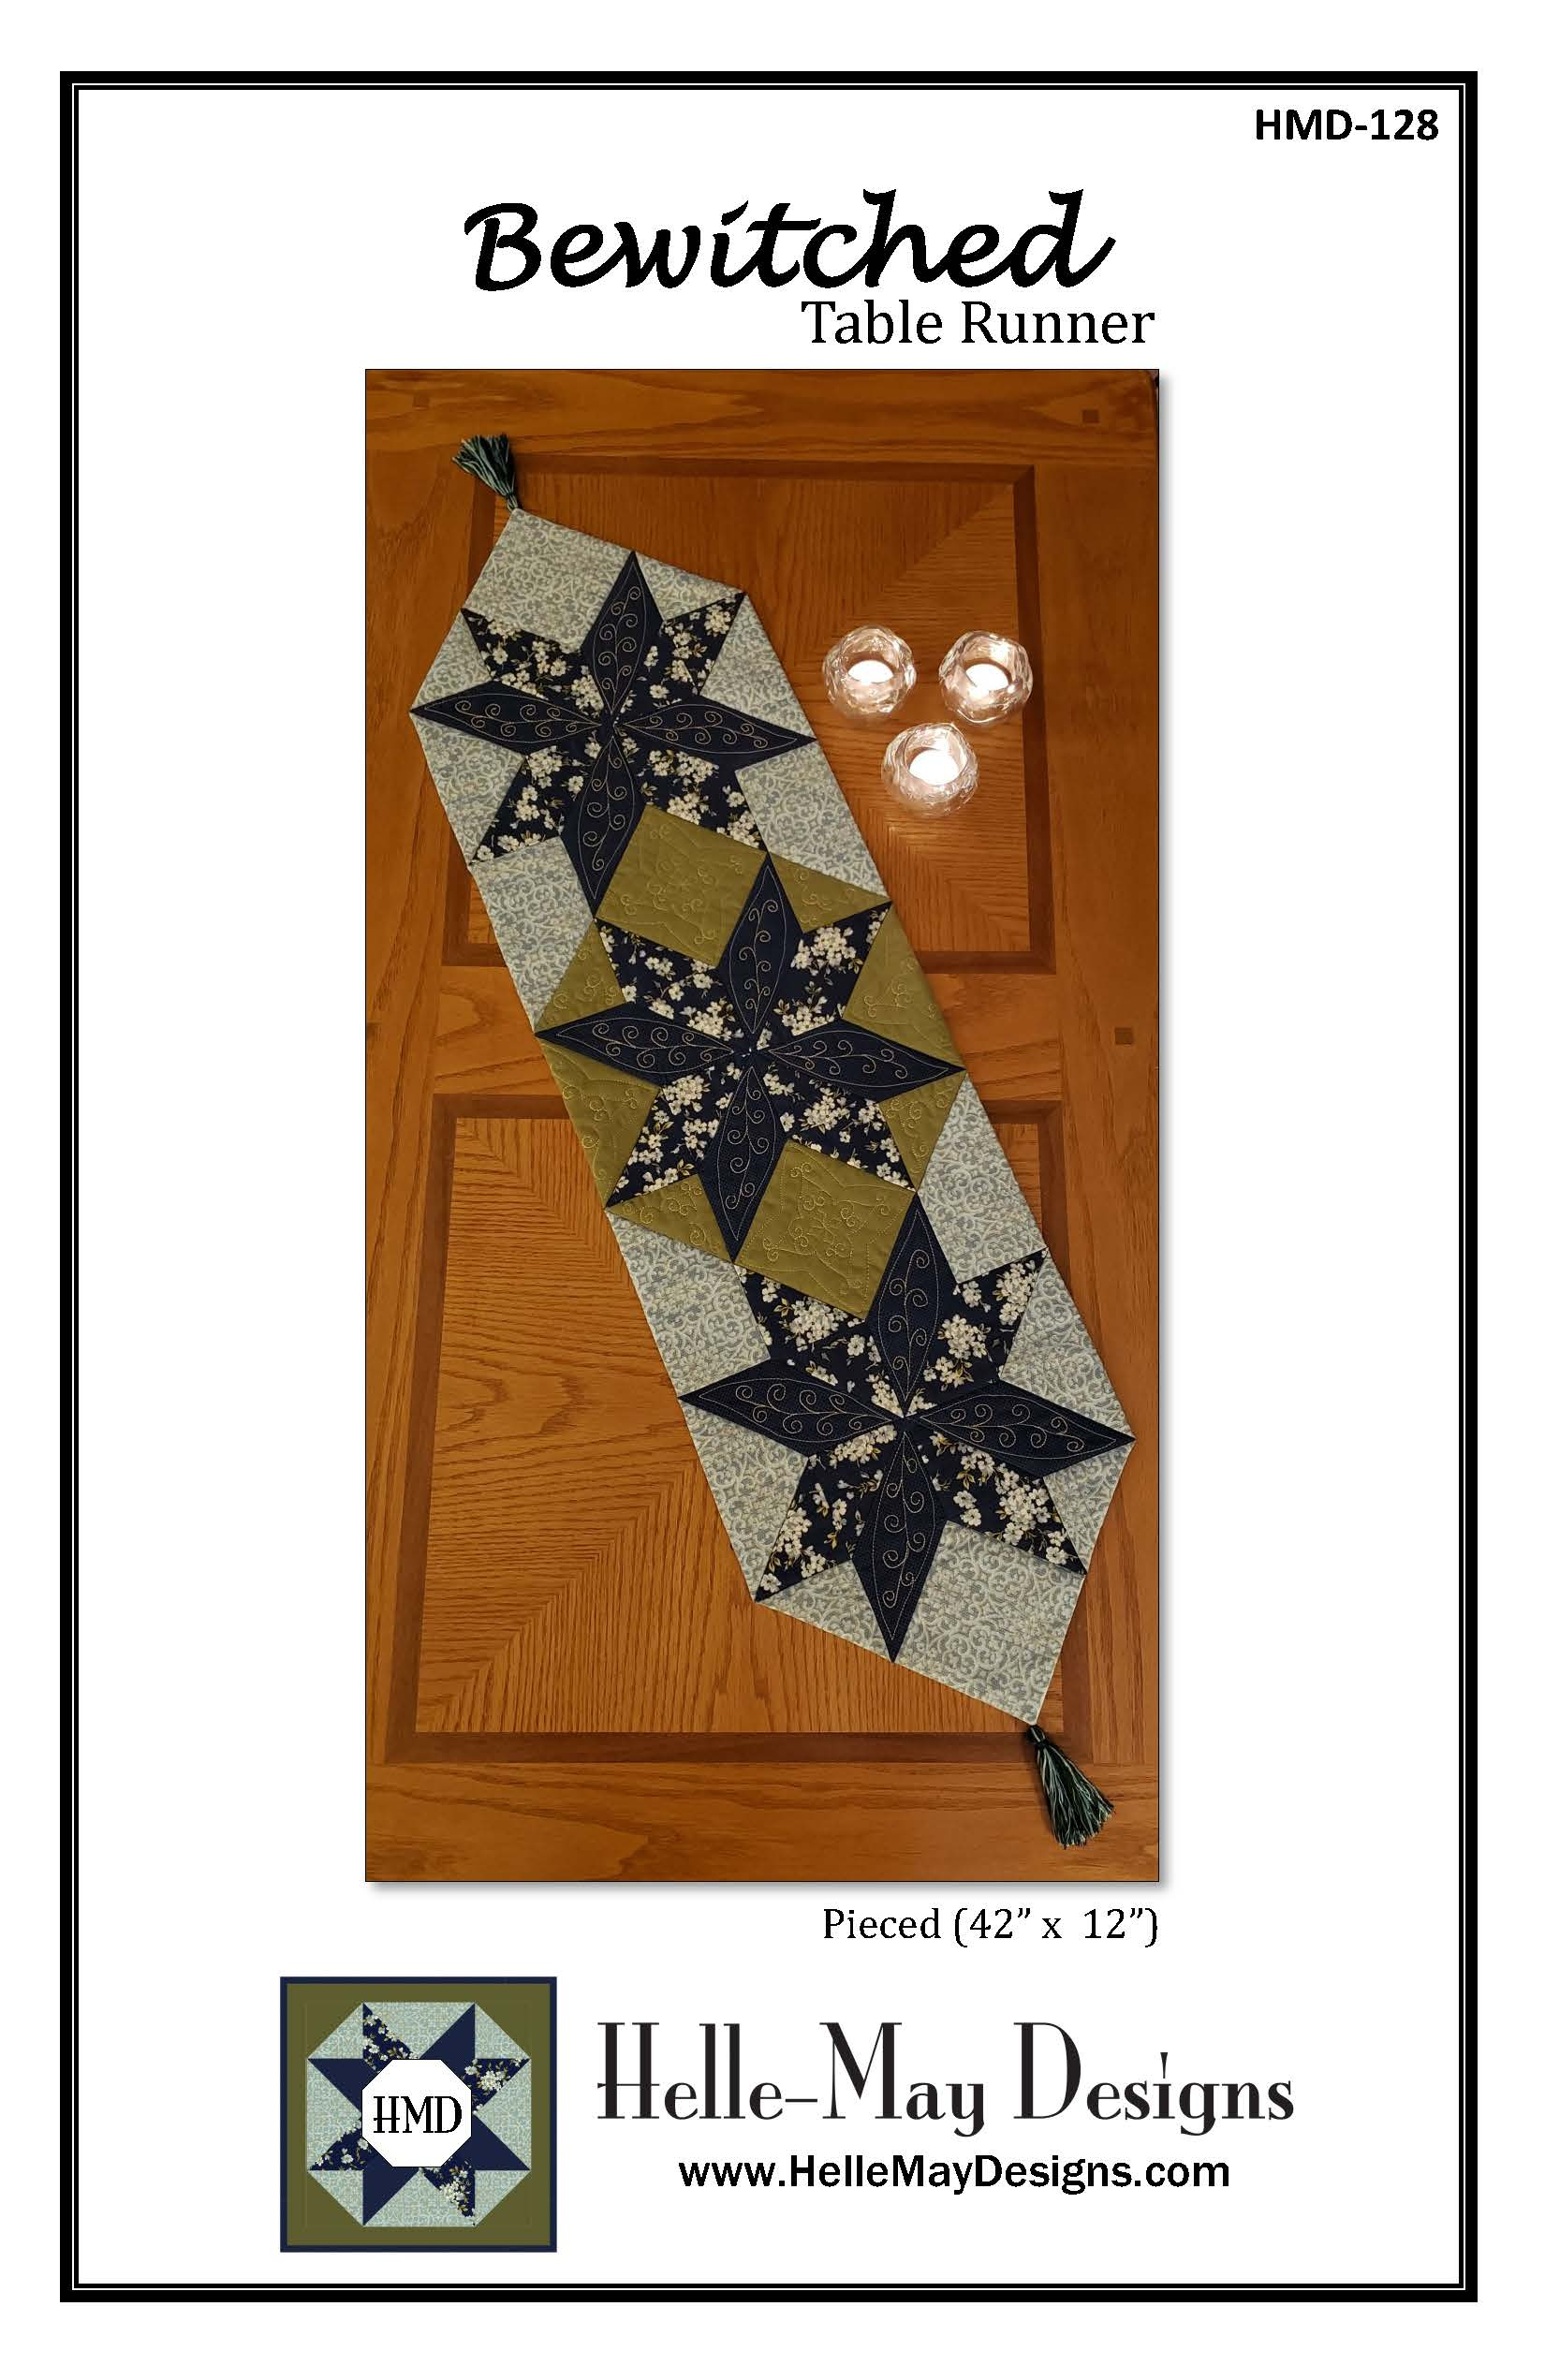 Bewitched Tale Runner by Helle-May Designs